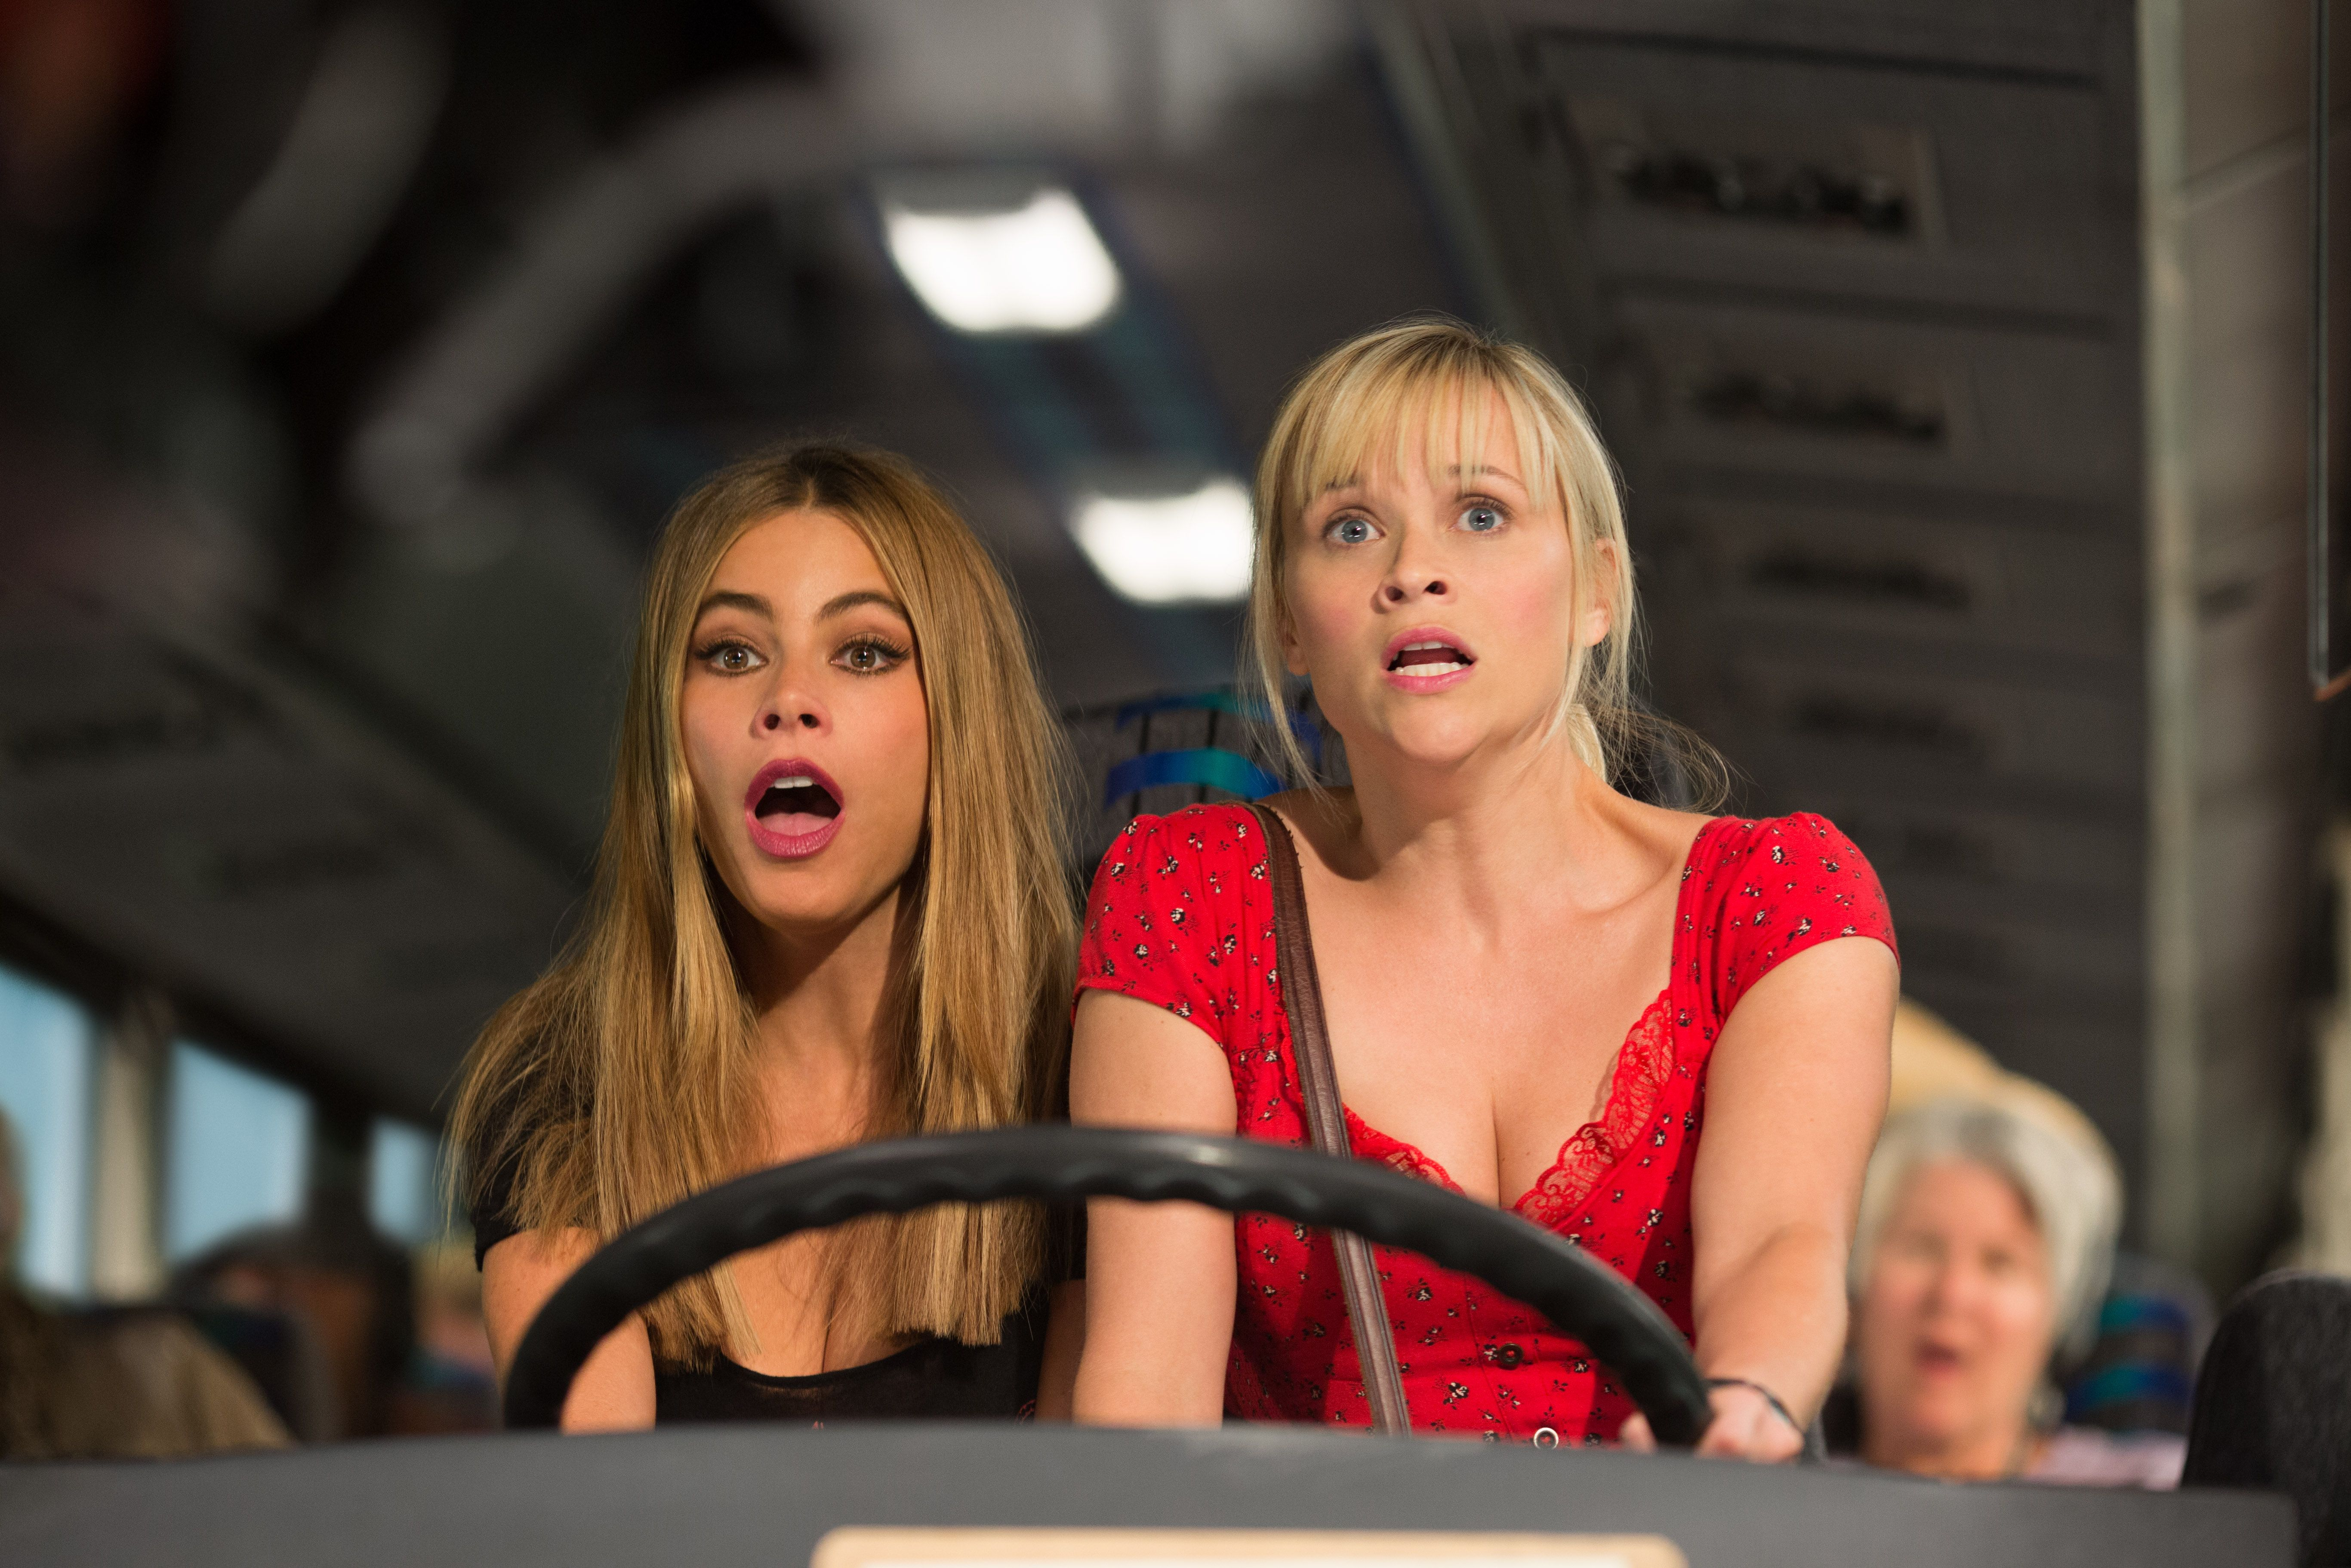 Running for your life has never been so funny. #HotPursuit